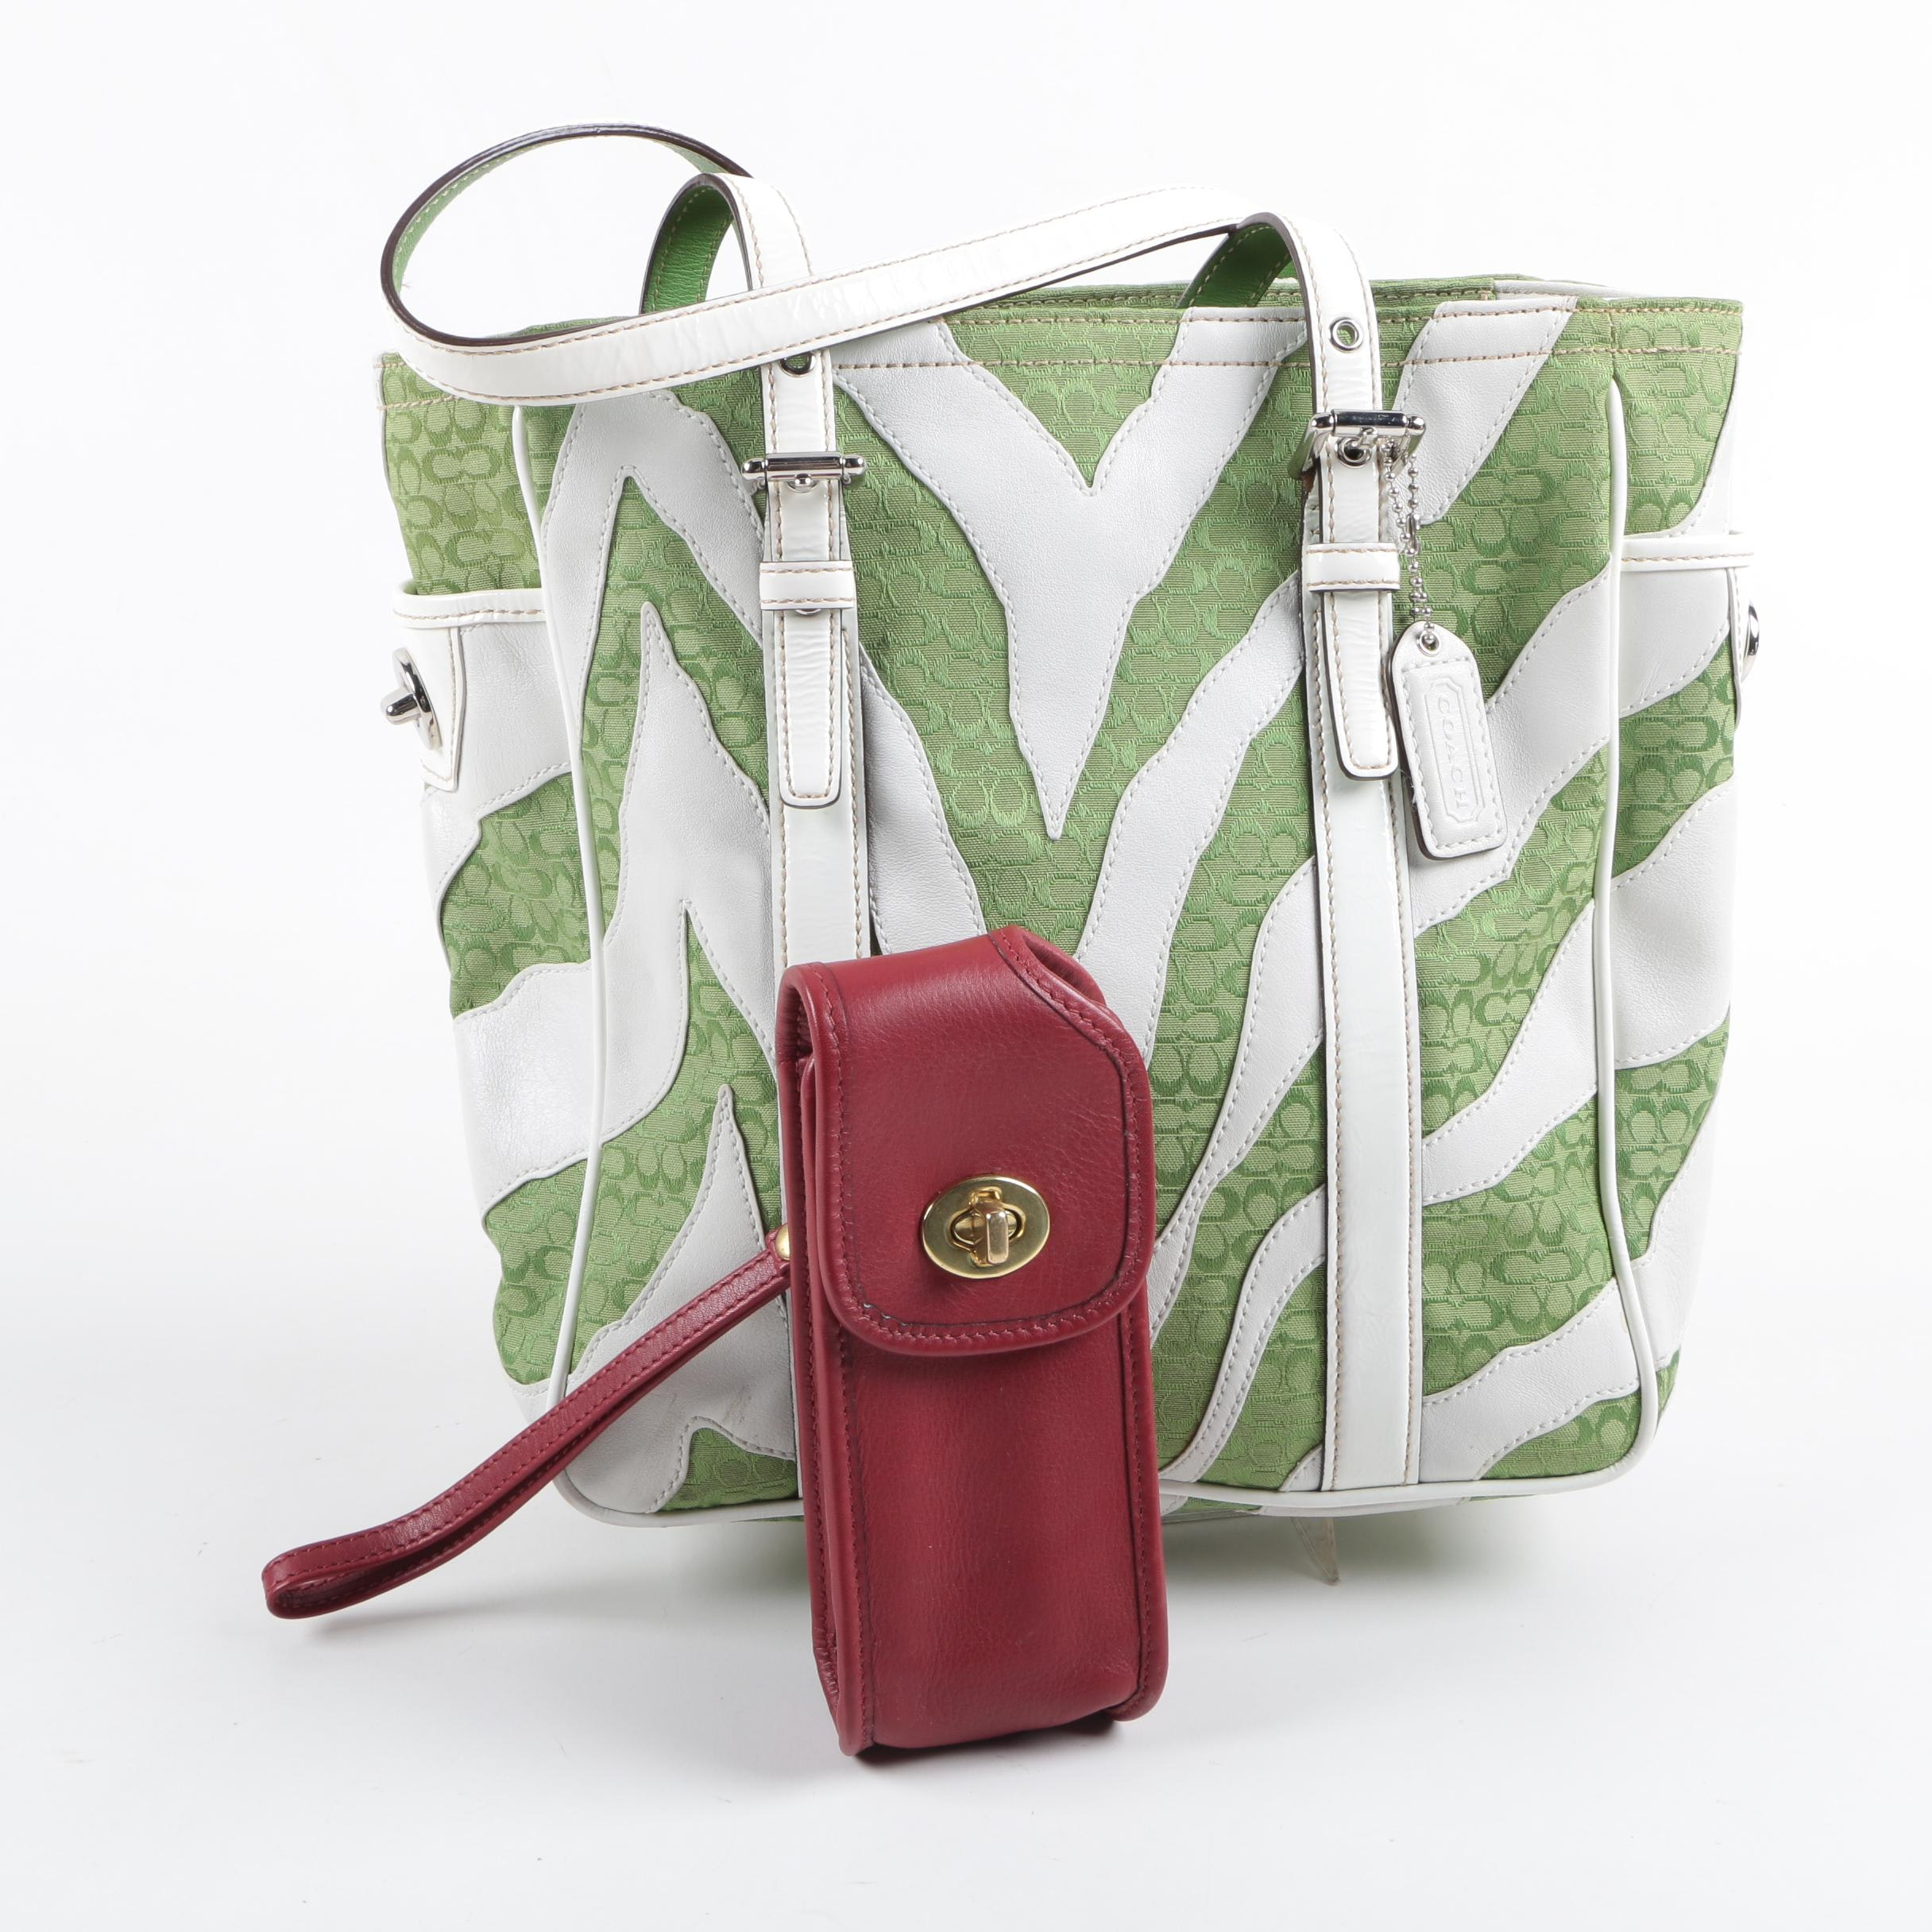 Coach Zebra Carryall Tote and Leather Cell Phone Pouch